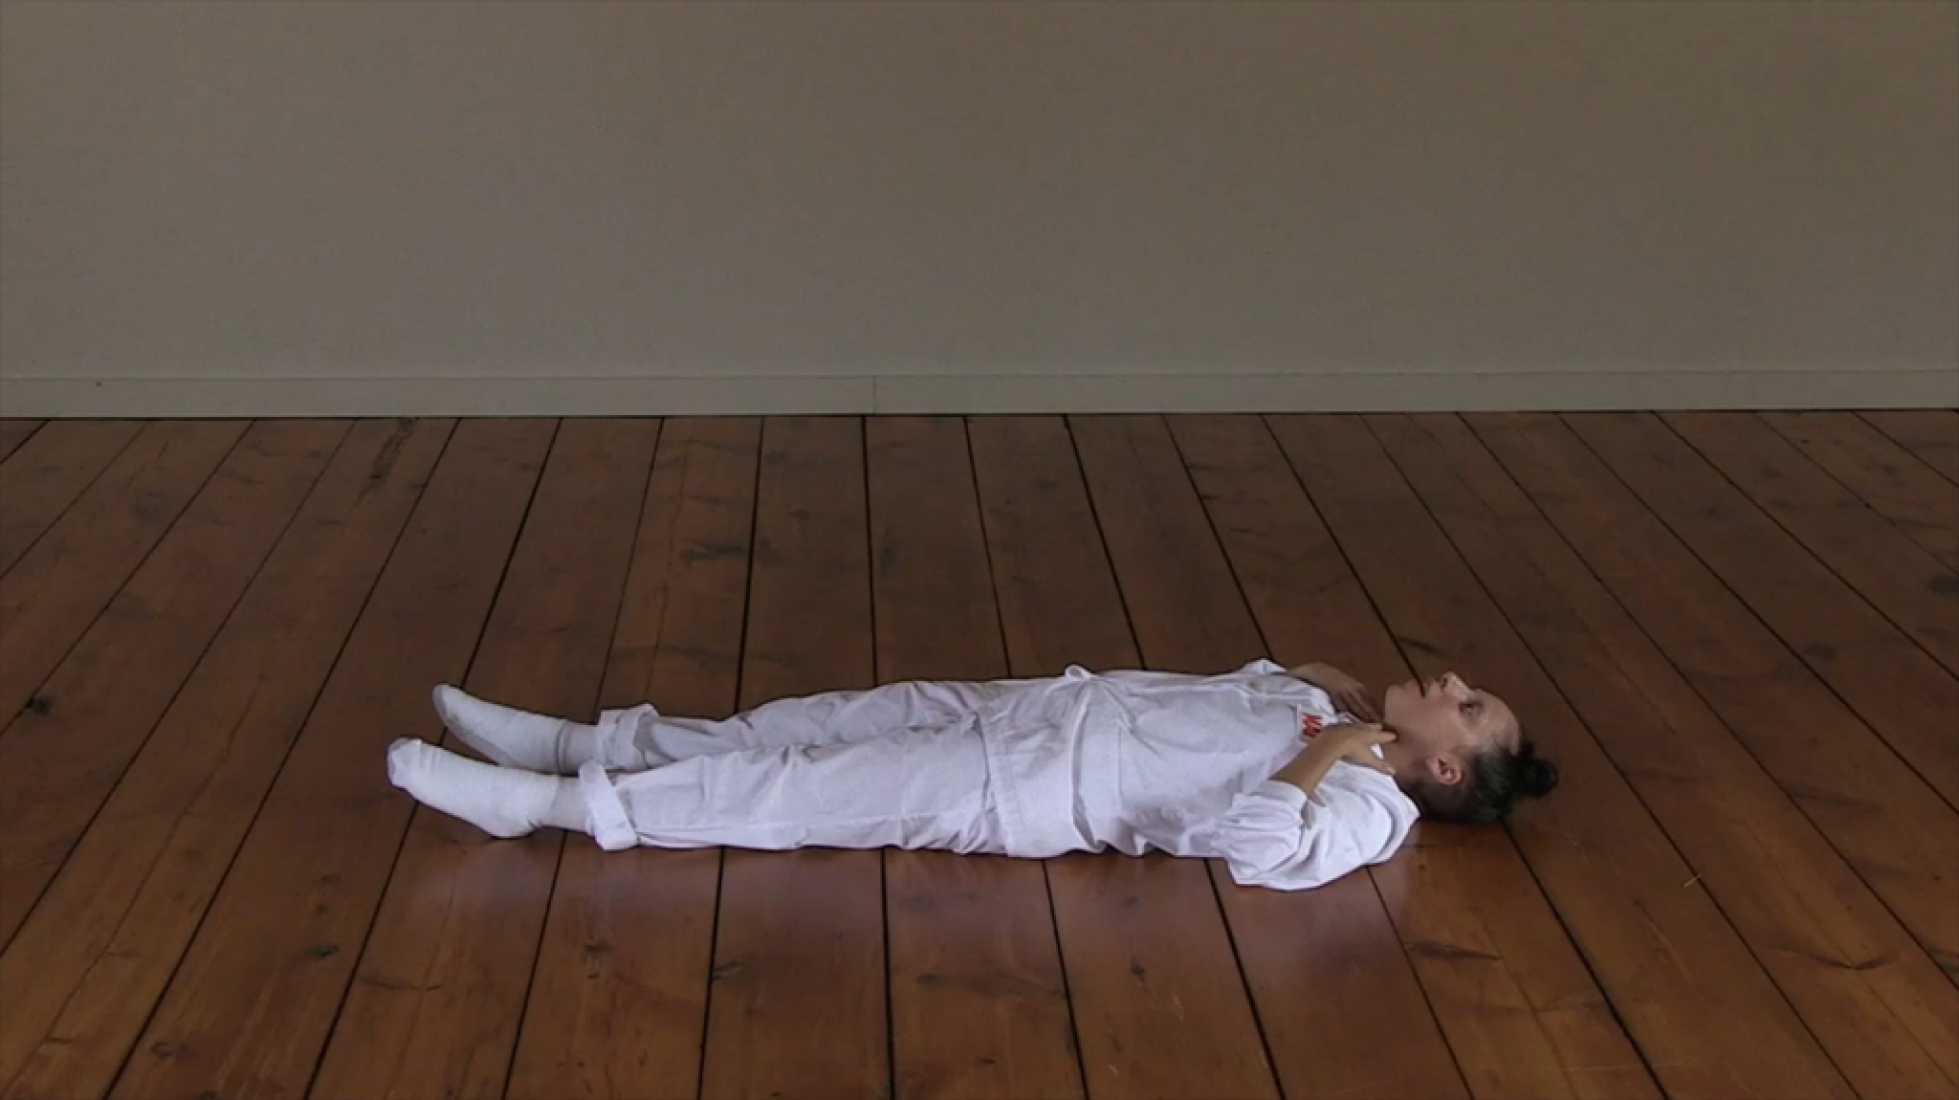 Corte de vídeo. The Abramovic Method Practiced by Lady Gaga.